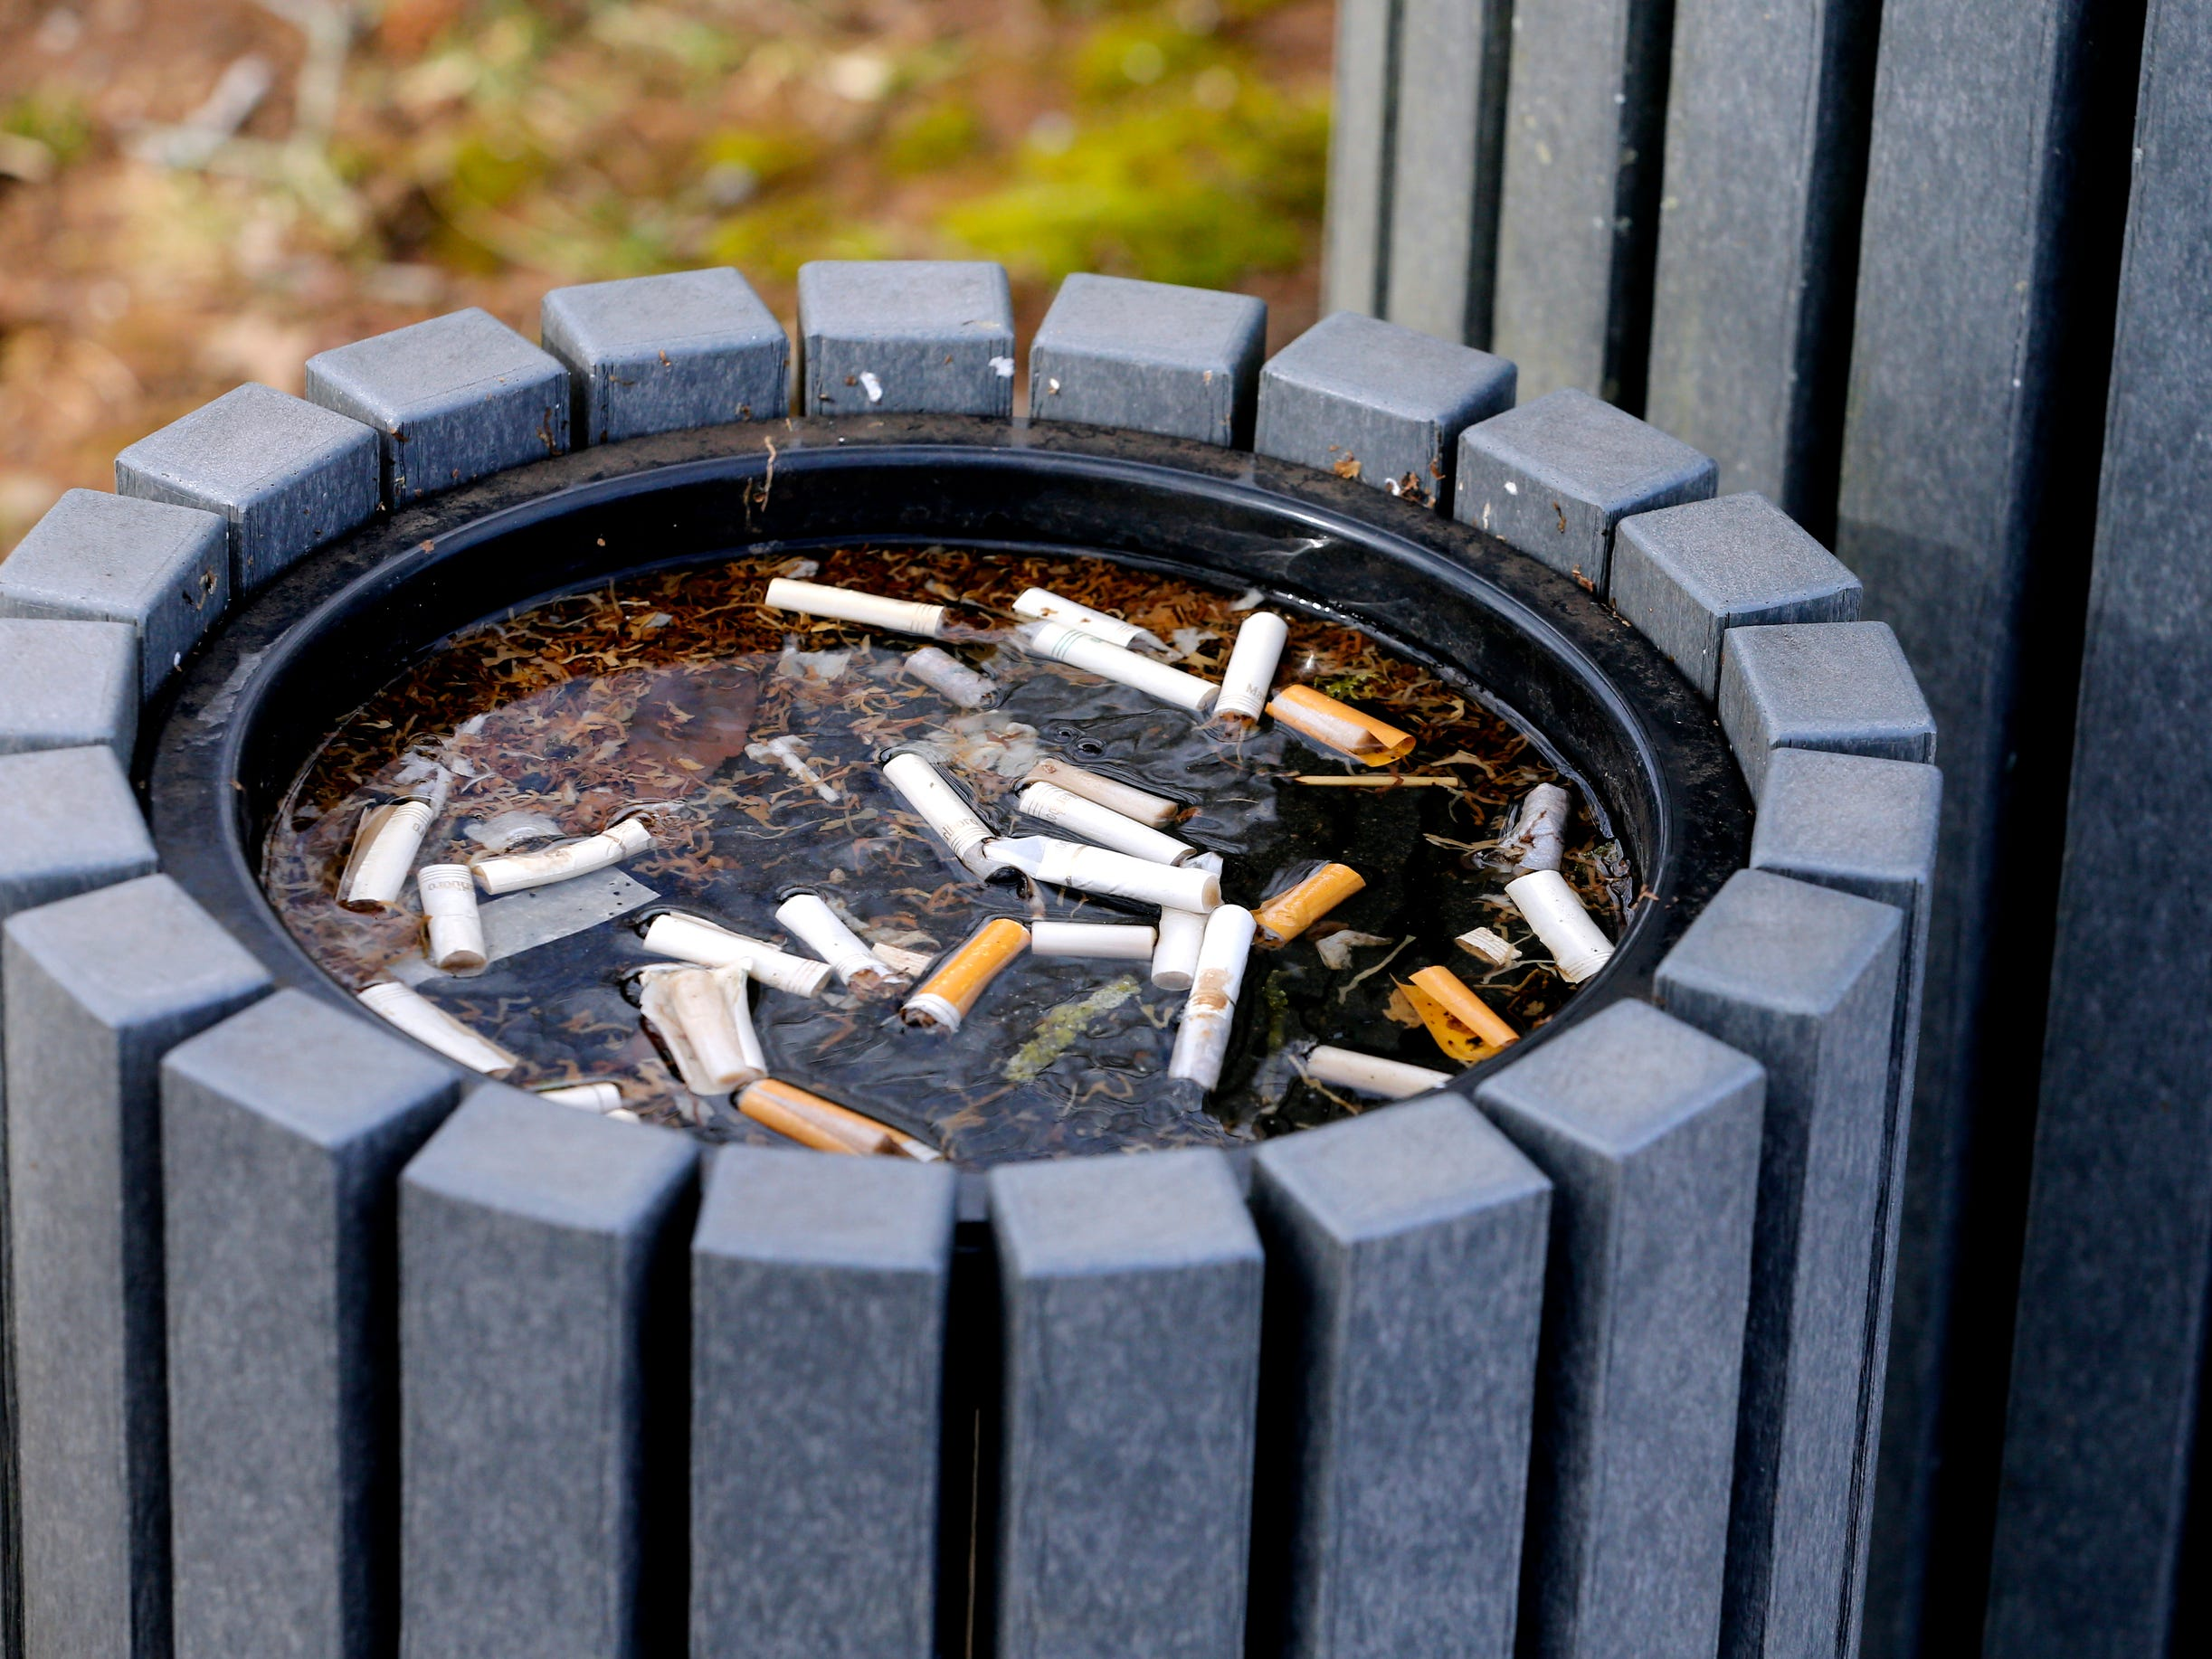 An ashtray at The Stones River National Battlefield is unattended on Thursday Jan. 7, 2019, since the government shutdown that started Dec. 22, 2018.